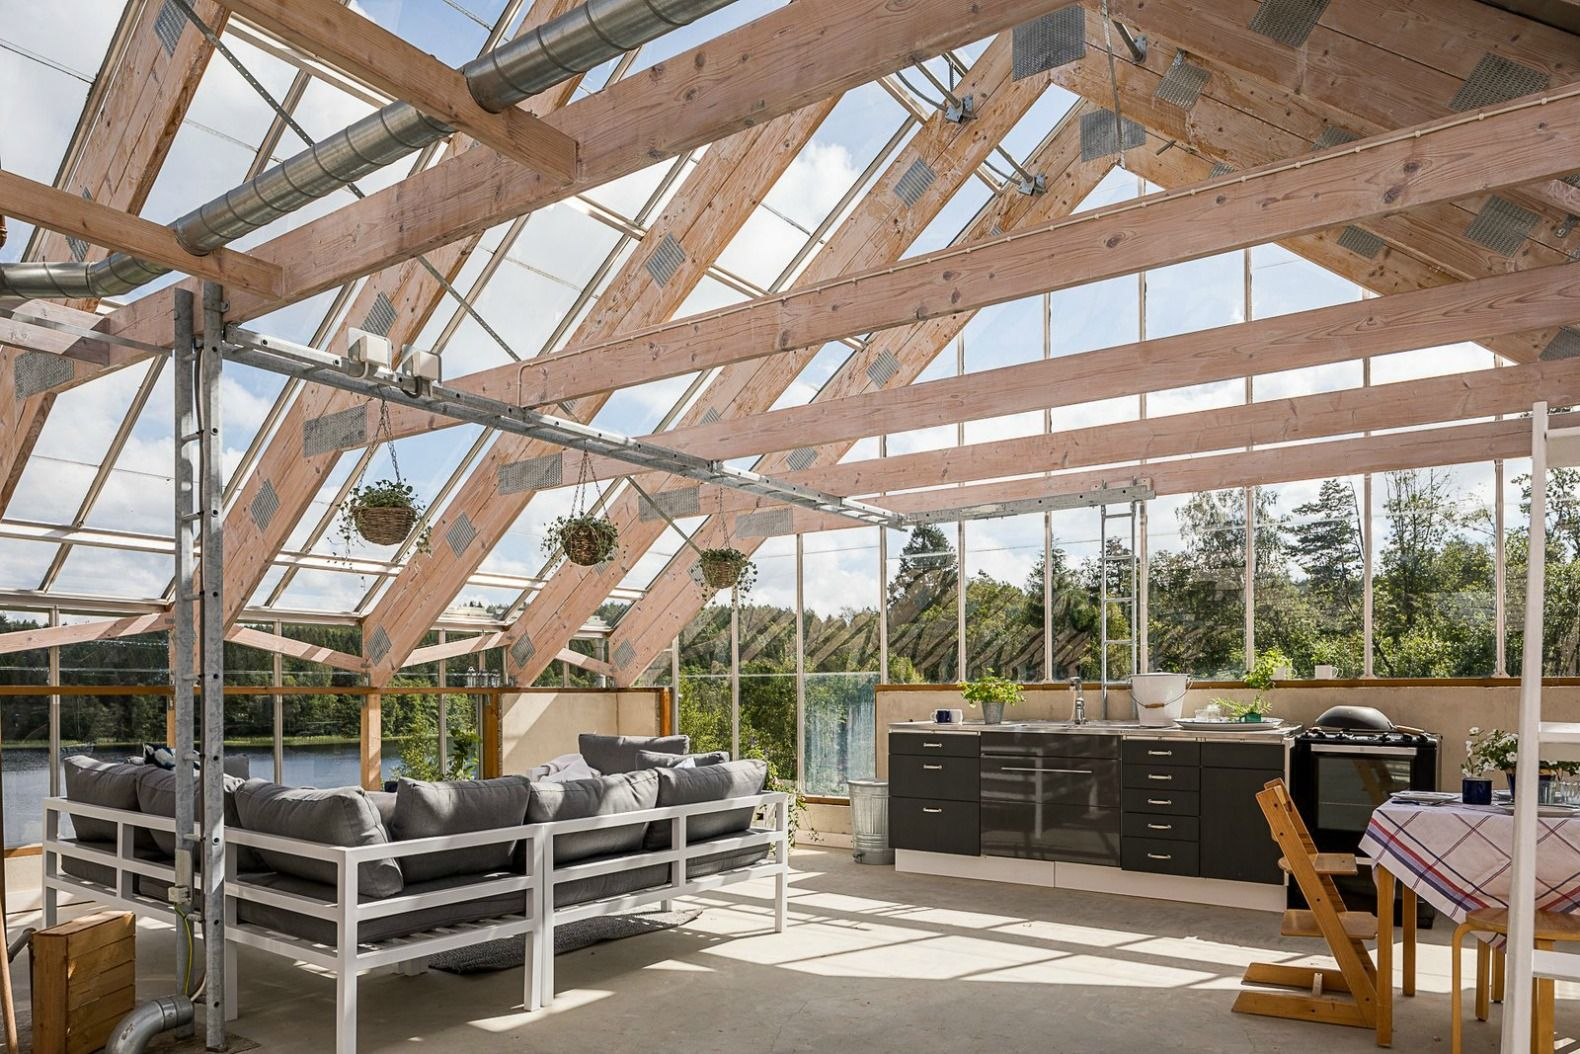 Gorgeous Solar Powered Greenhouse Home In Sweden Hits The Market Interior I Lifestyle - Haus Im Gewächshaus